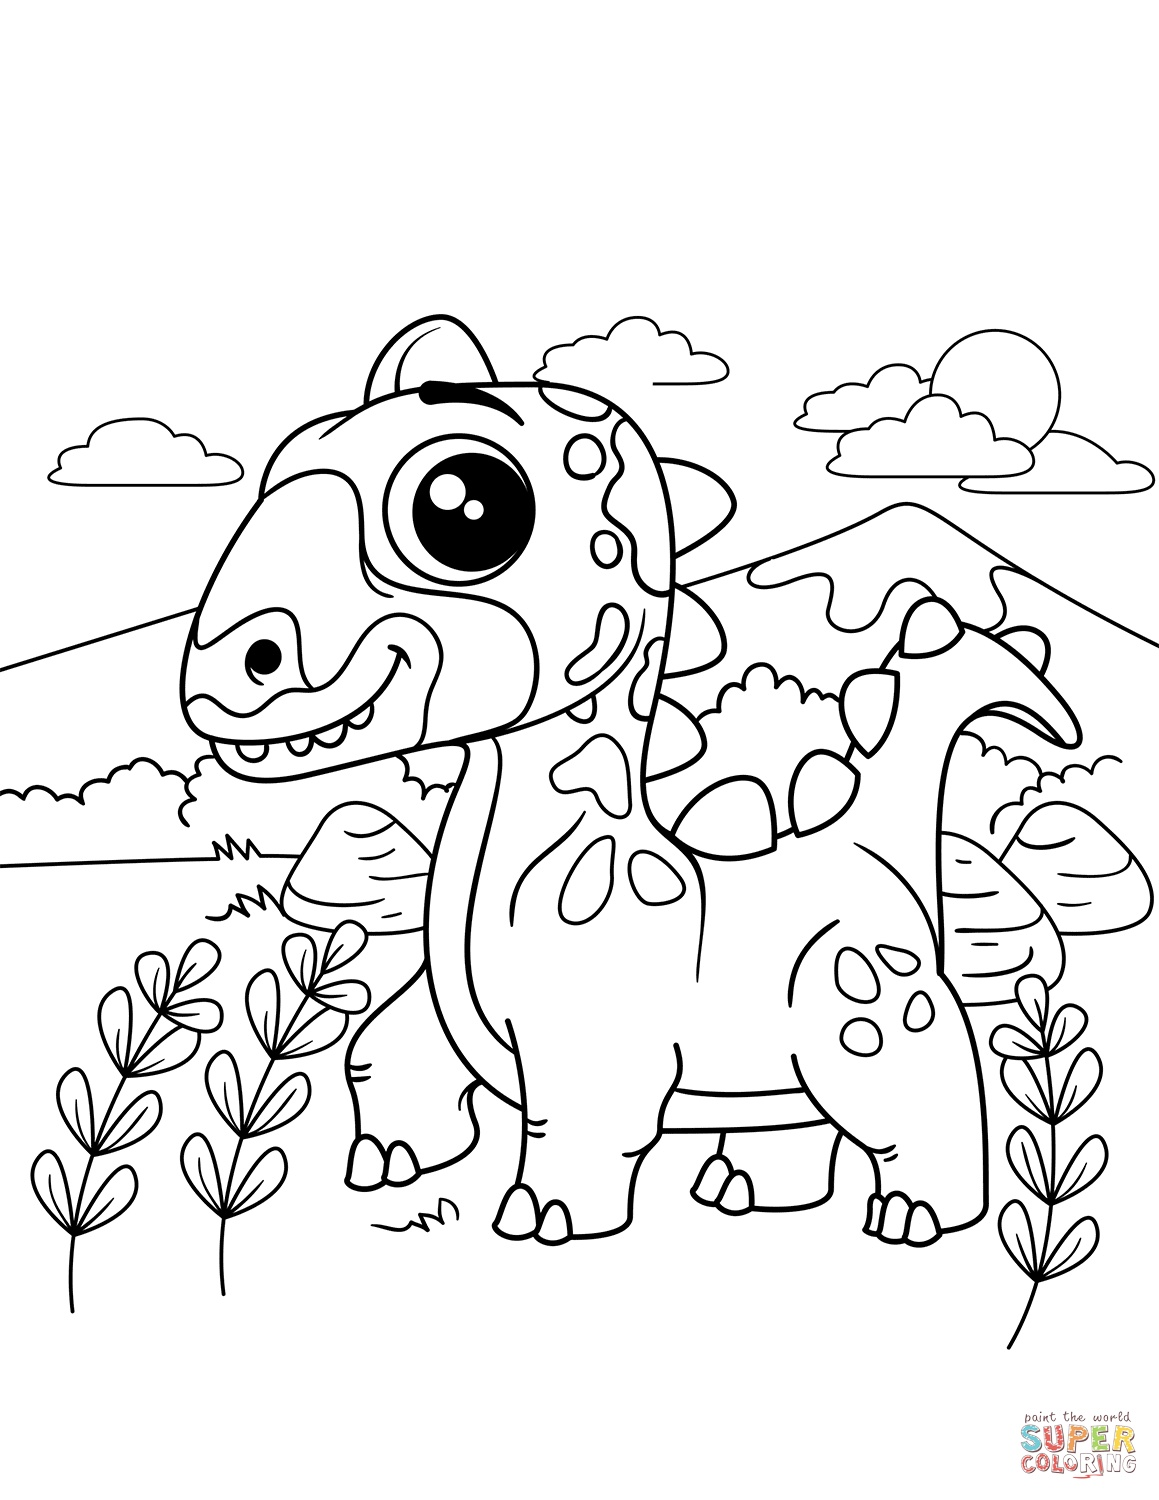 Easy Dinosaur Coloring Pages At Getcolorings